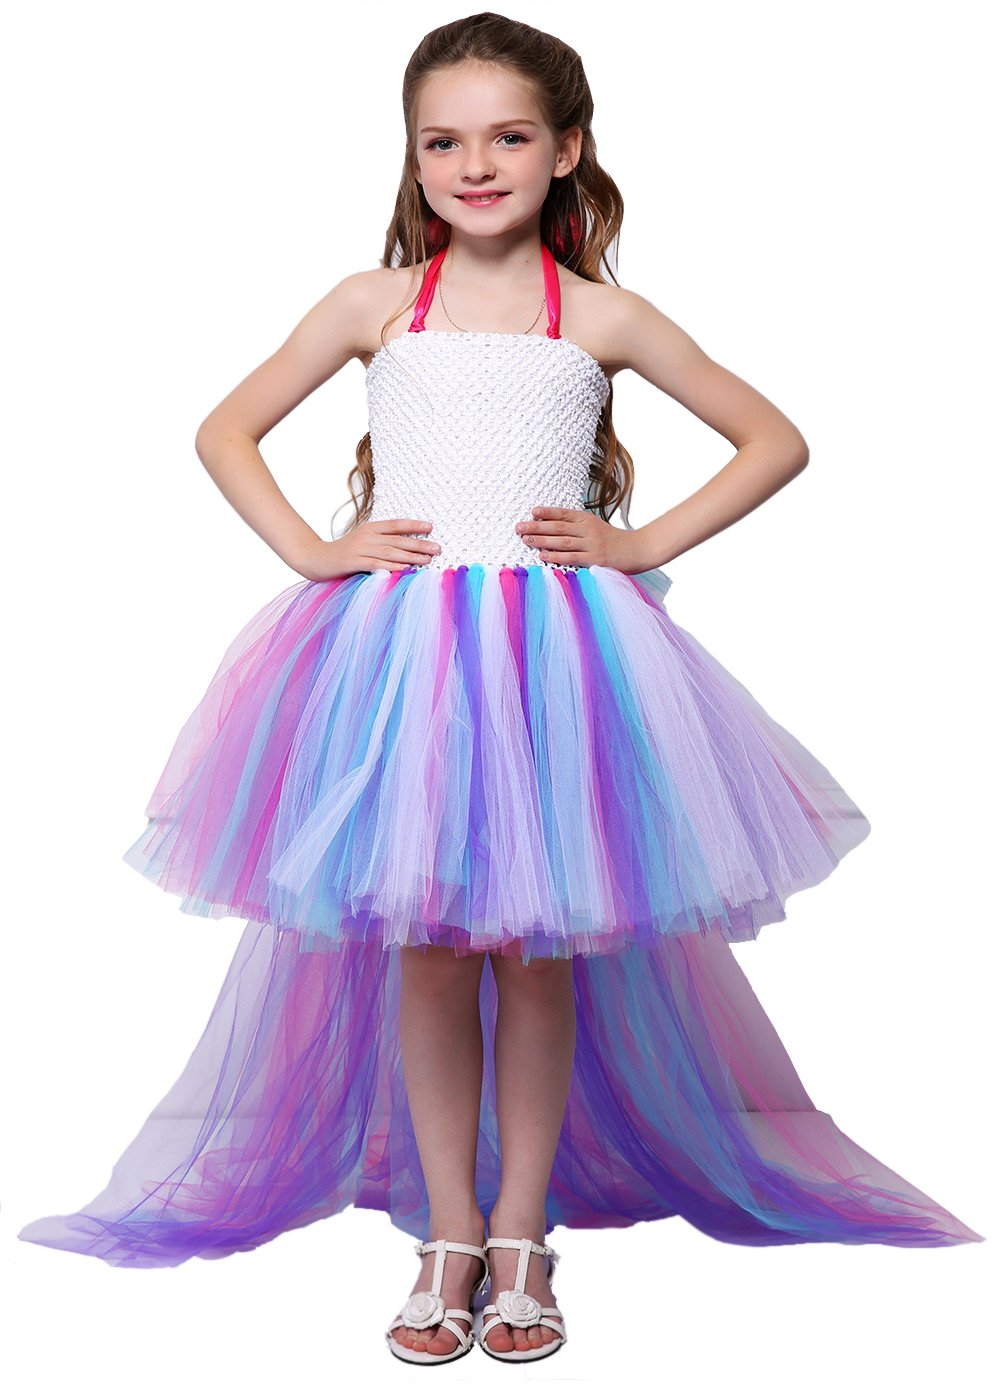 Tutu Dreams Unicorn Dresses for Little Girls with Long Tail (6,Pony)